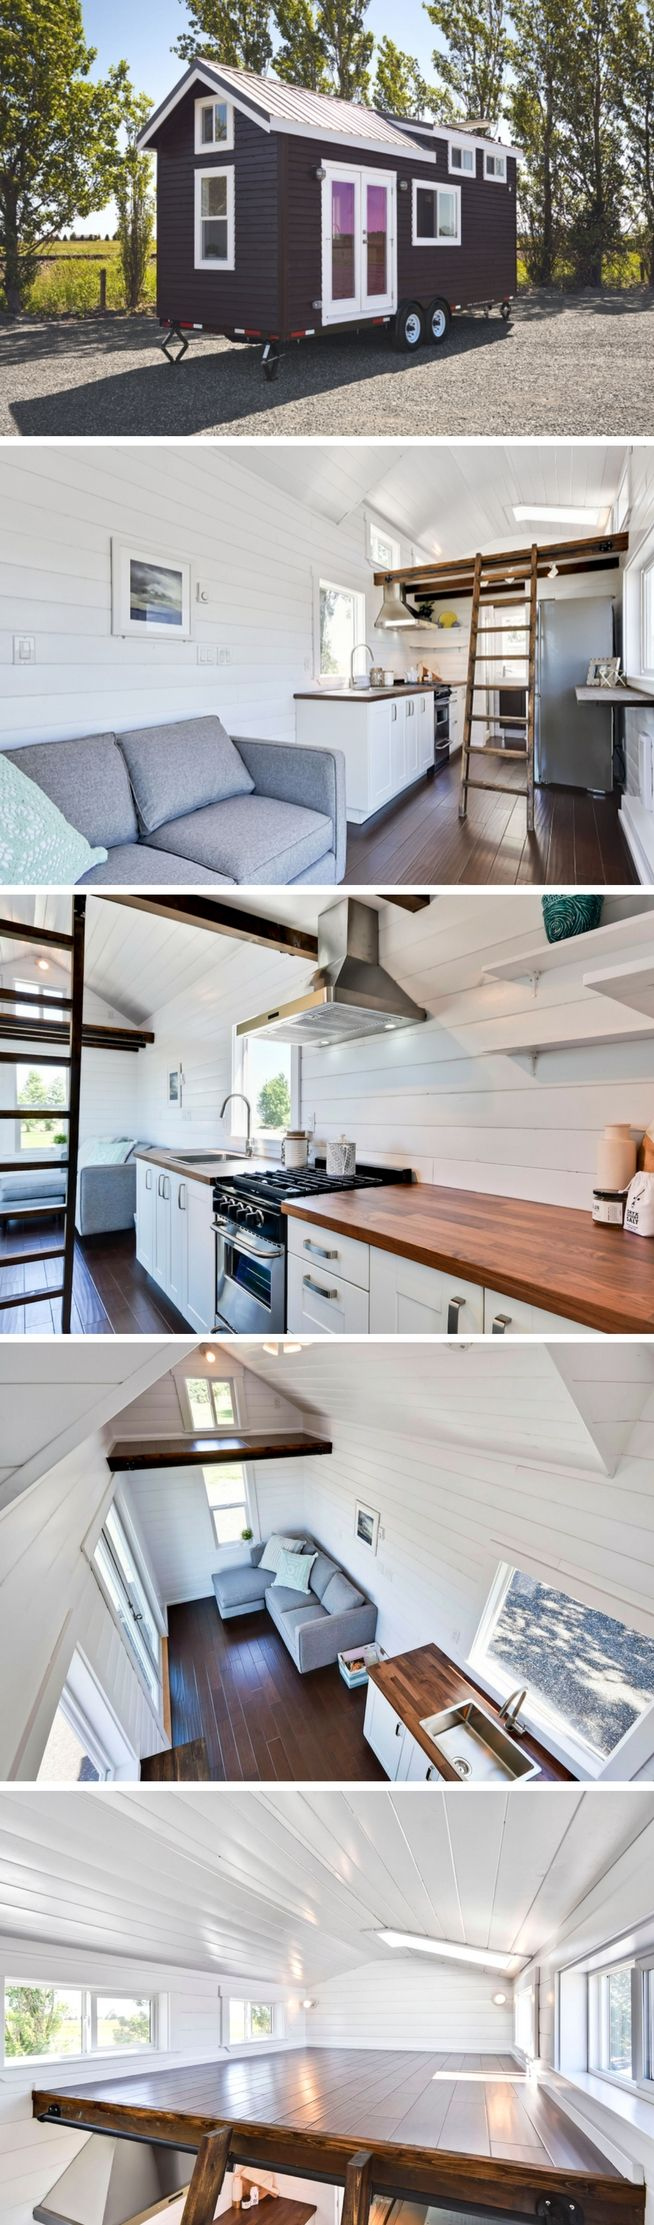 318 best tiny house ideas images on Pinterest | Tiny house cabin ...